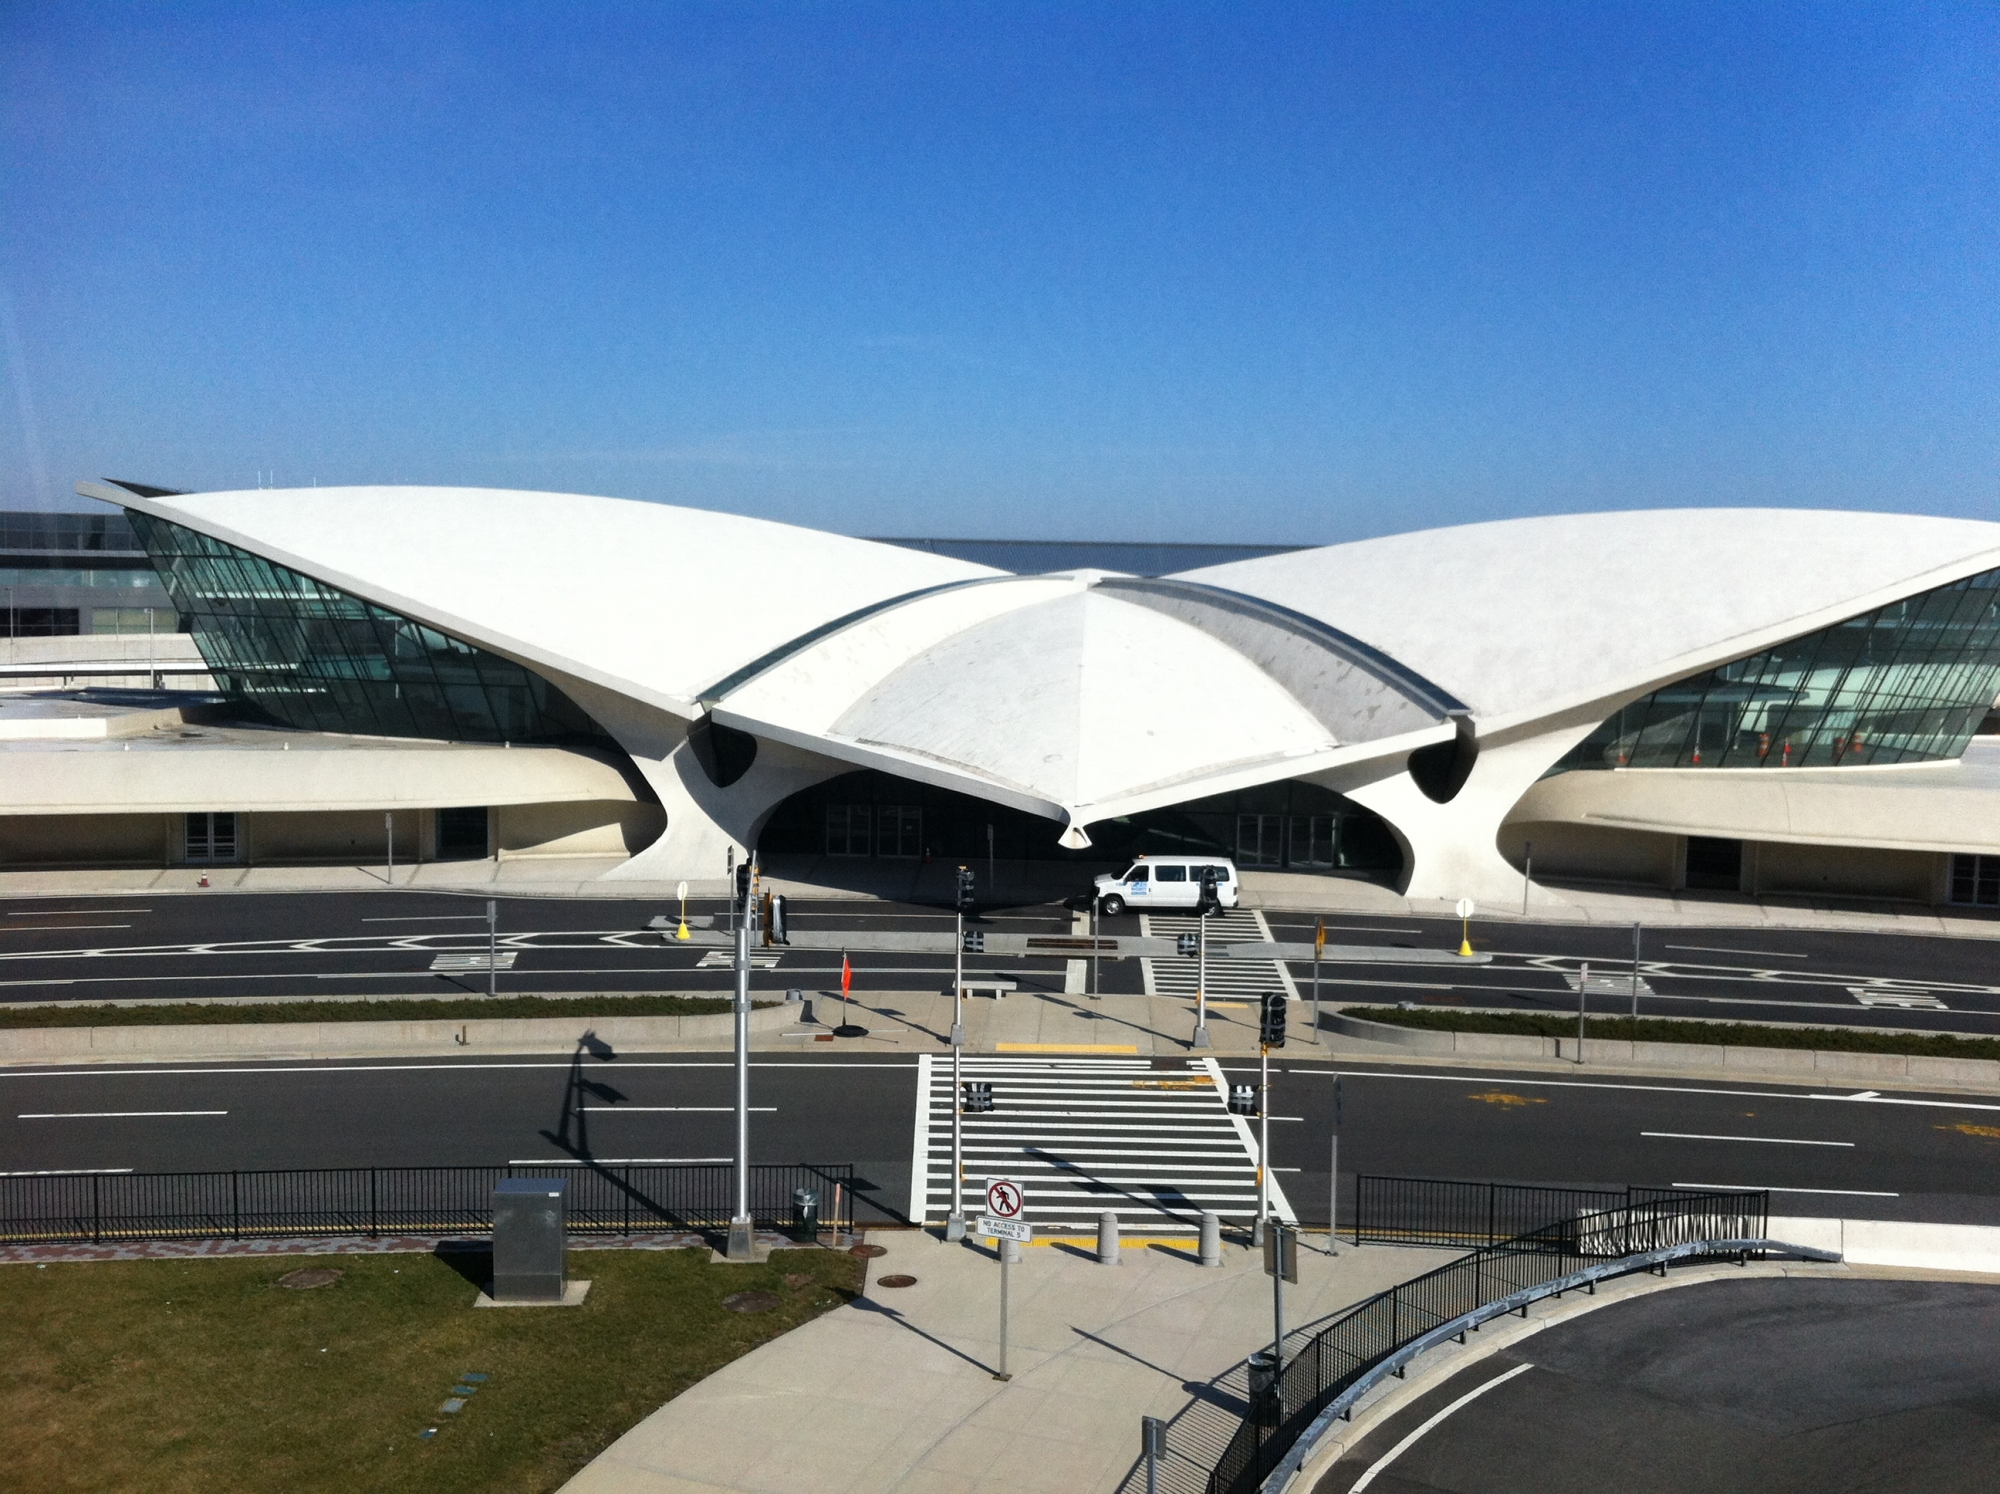 Jfk S Iconic Twa Flight Center To Become A Hotel New York